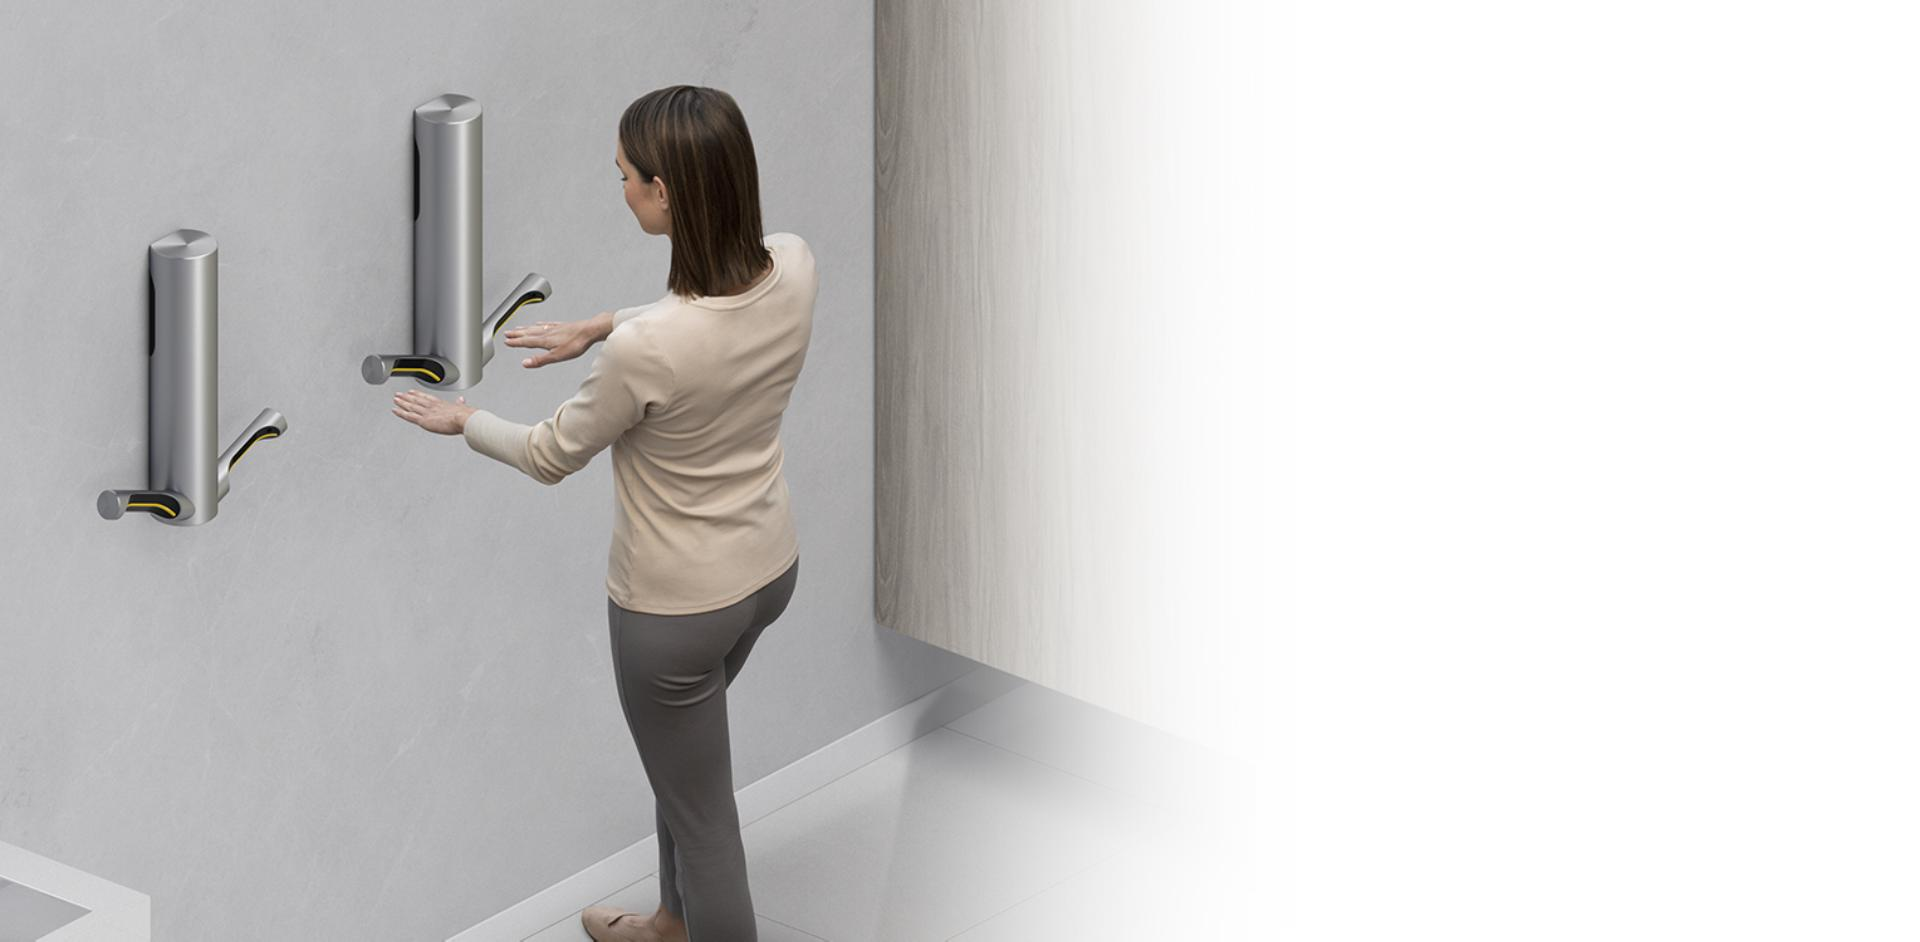 Woman drying hands with Dyson Airblade 9kJ